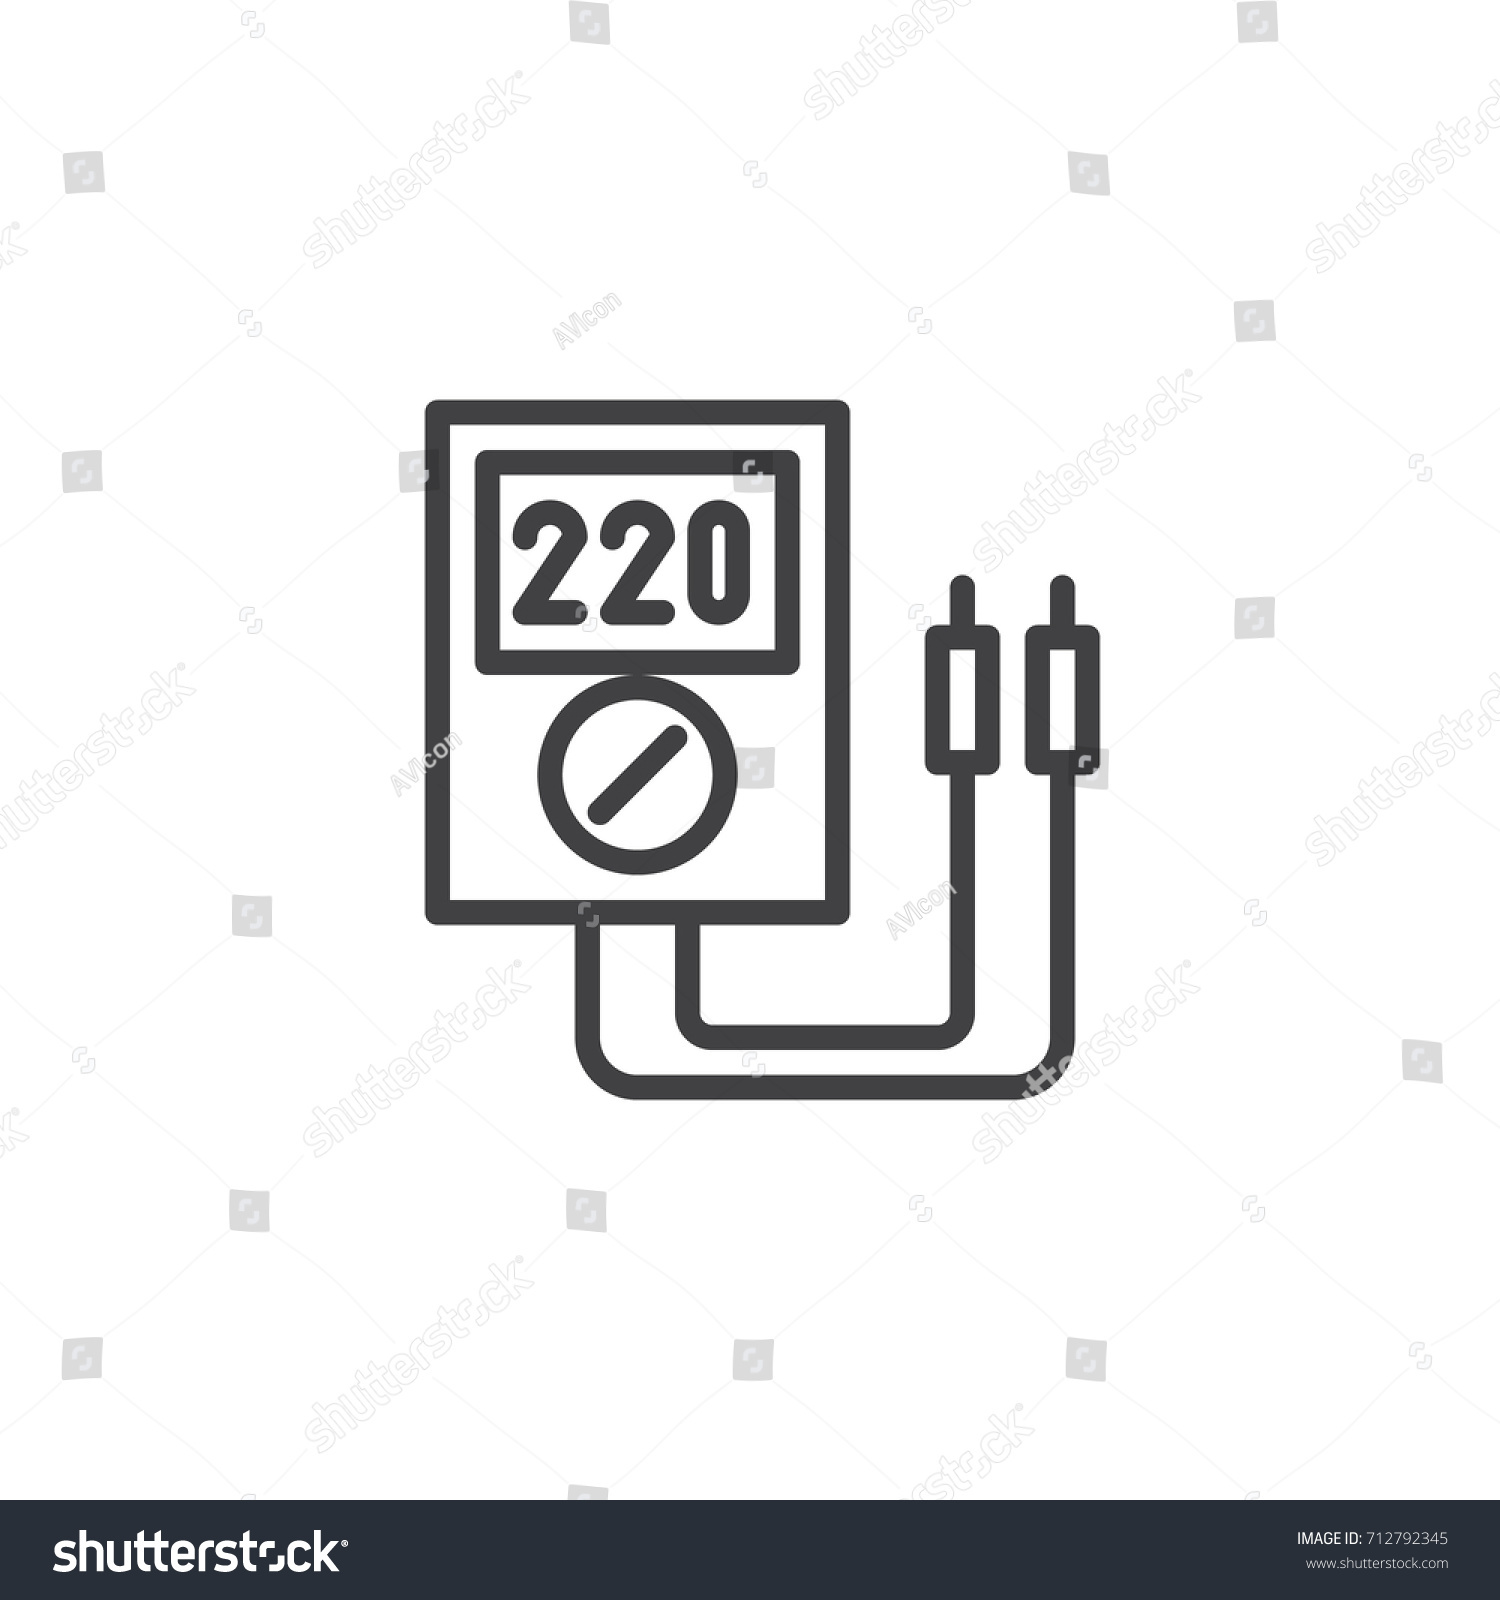 Cute Wiring Diagram For 150cc Scooter Tiny Dimarzio Pickup Wiring Color Code Round 3 Coil Pickup Gibson 3 Way Switch Young Guitar 5 Way Switch GreenWiring Gitar Voltmeter Line Icon Outline Vector Sign Stock Vector 712792345 ..